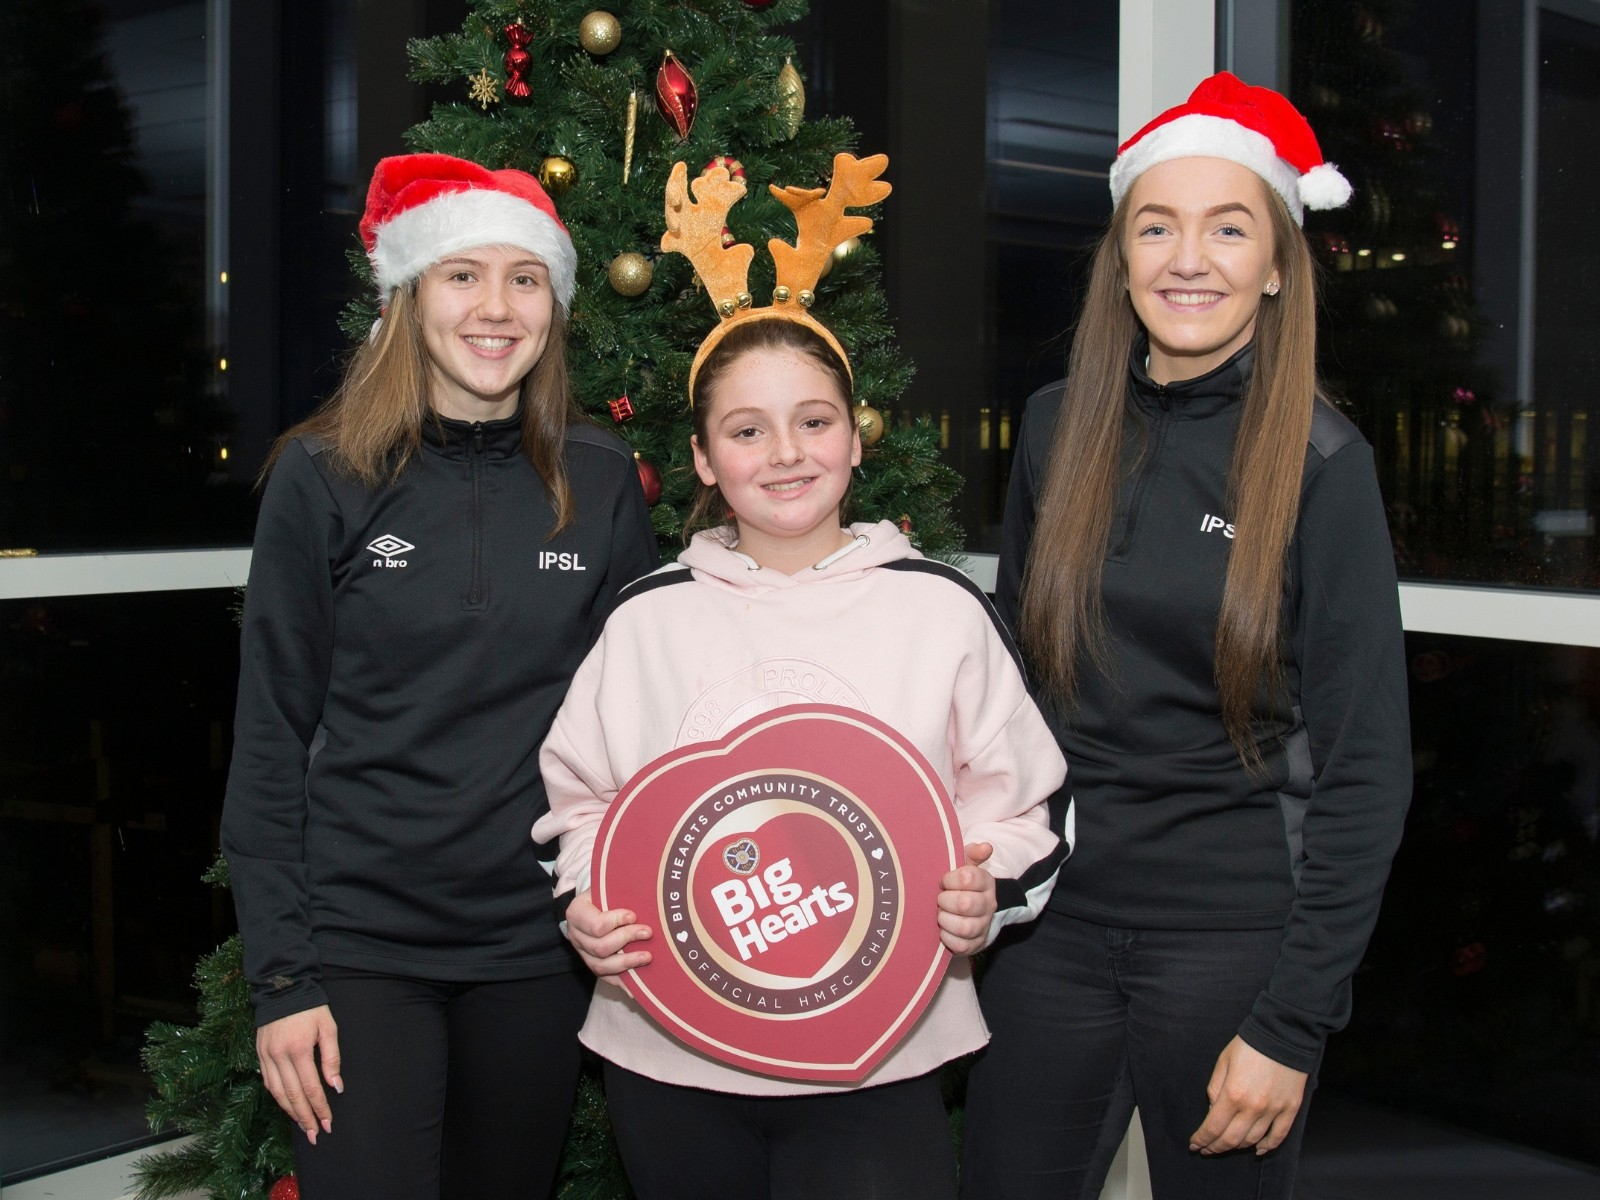 » Our 5 ambitions this festive season: Christmas made in Big Hearts